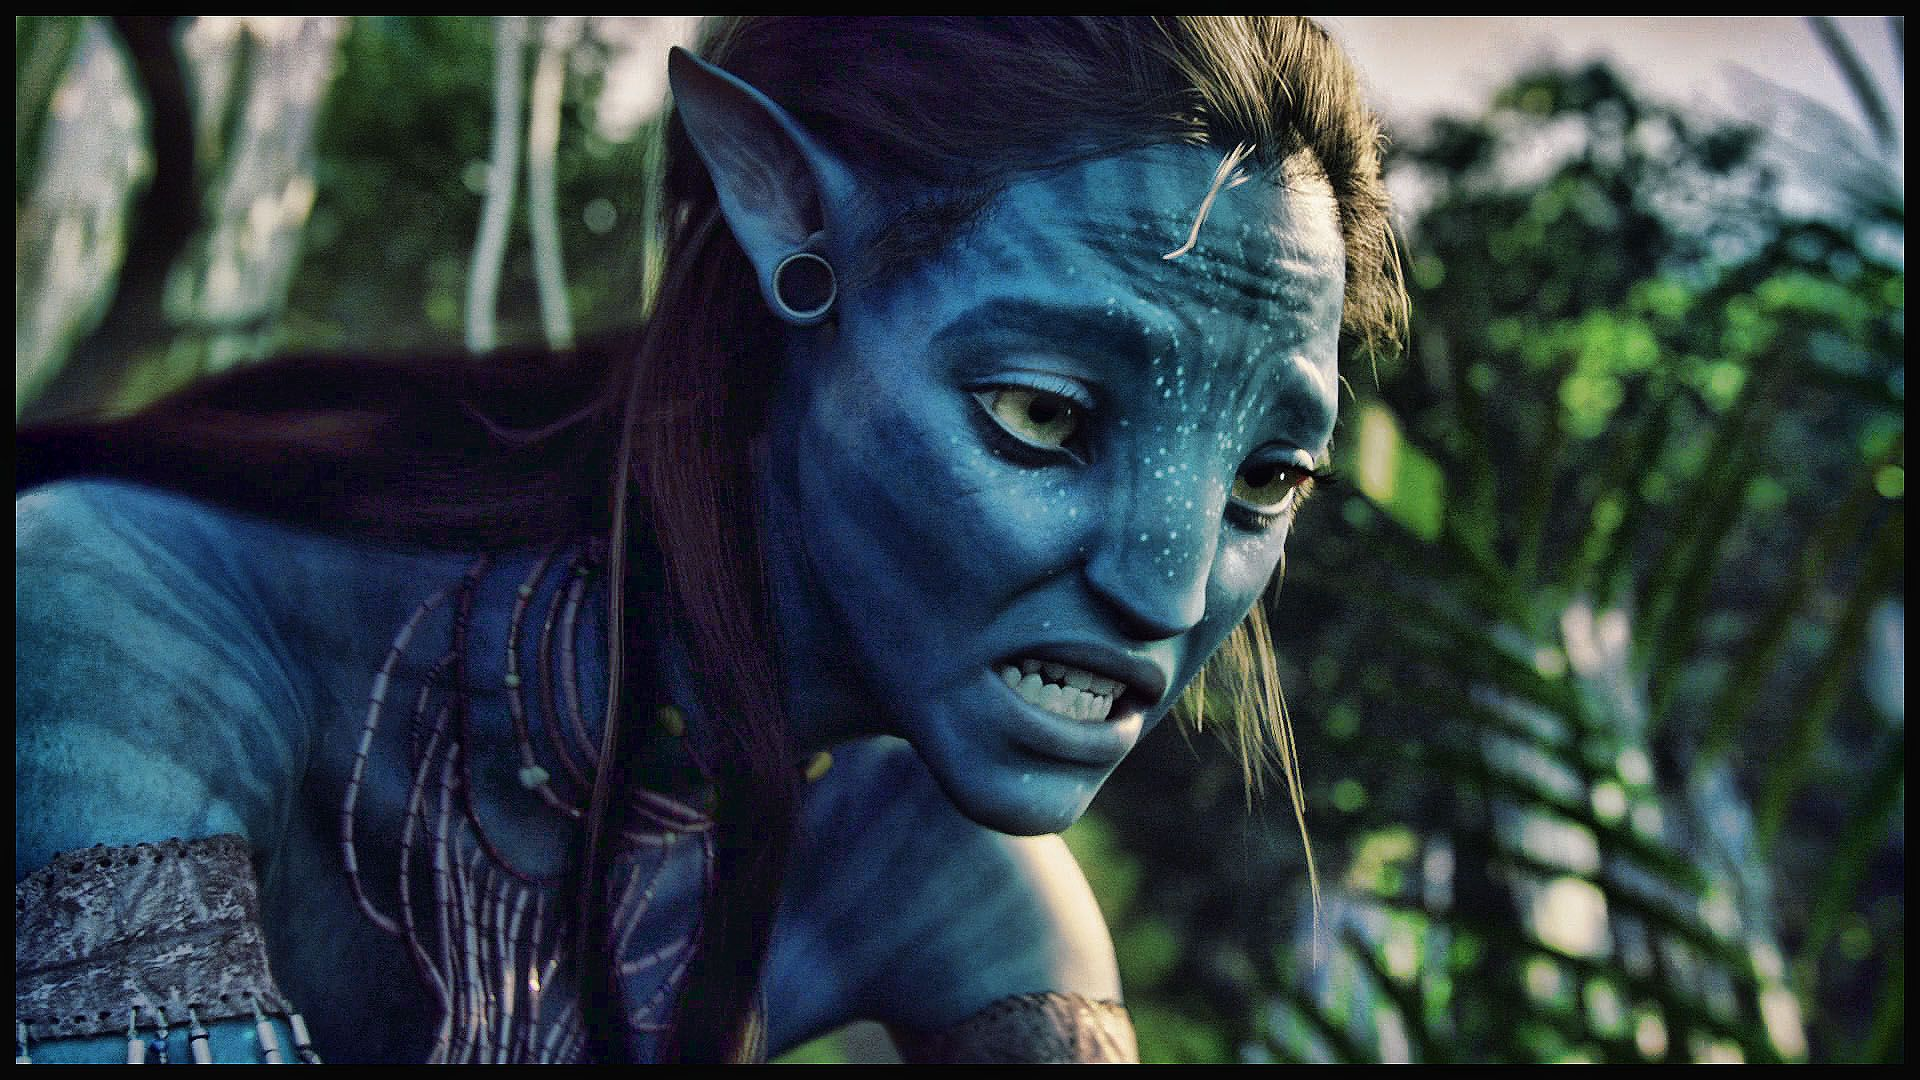 the amazing neytiri wallpapers in jpg format for free download | 3d